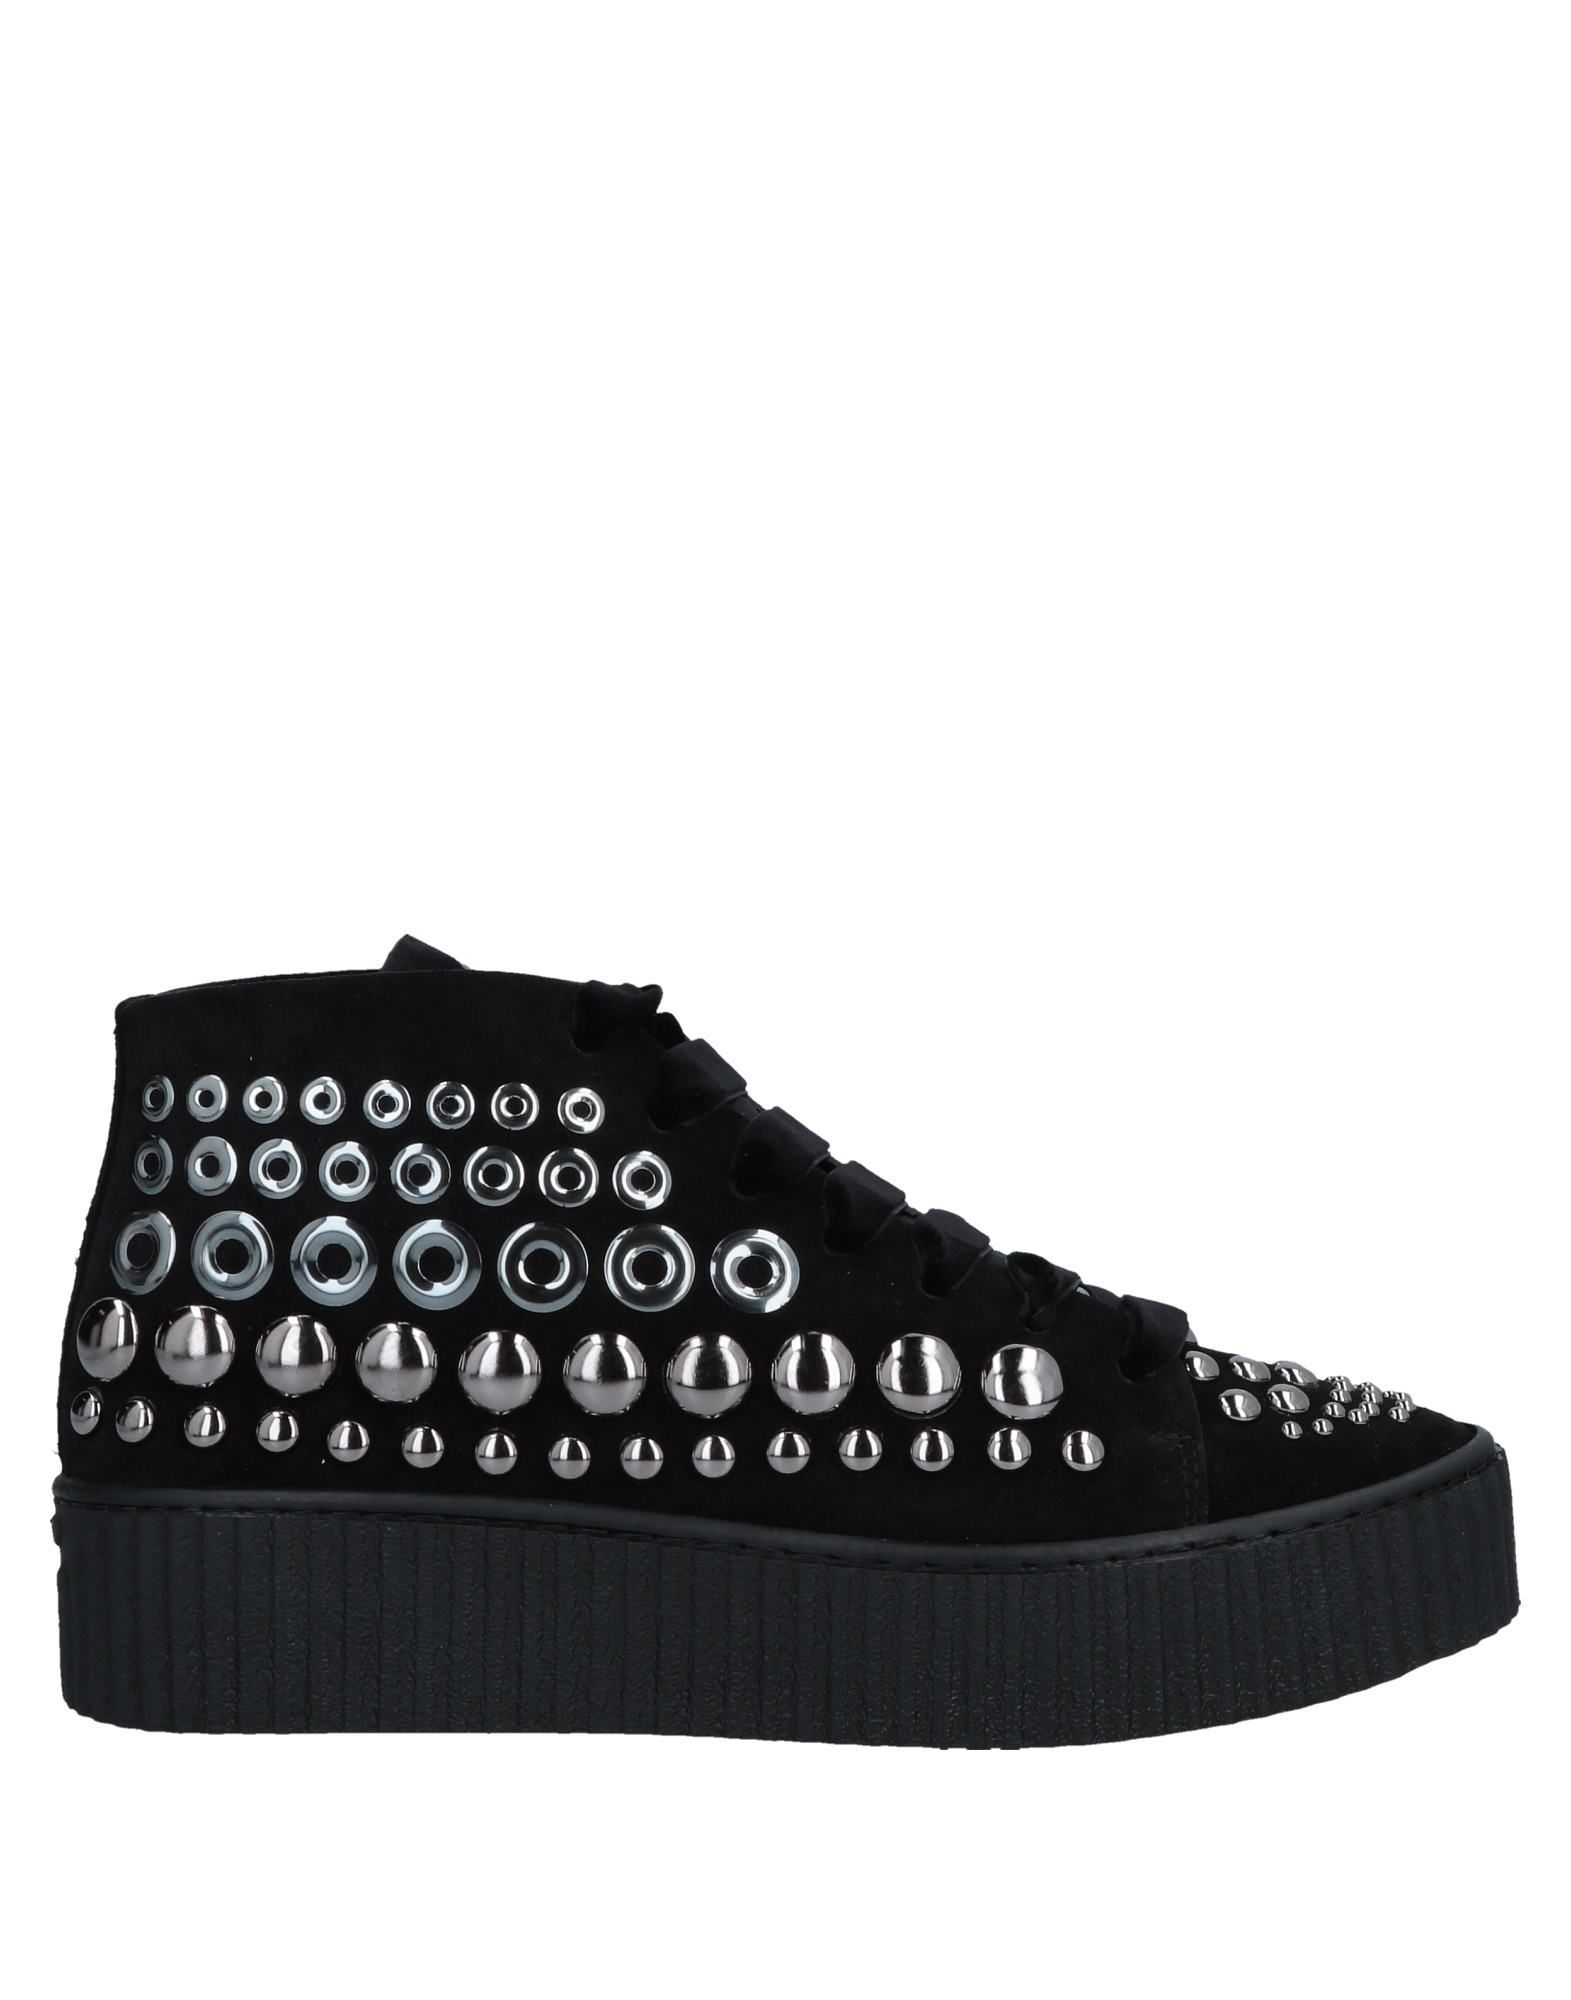 Pinko Black Leather Studded Sneakers